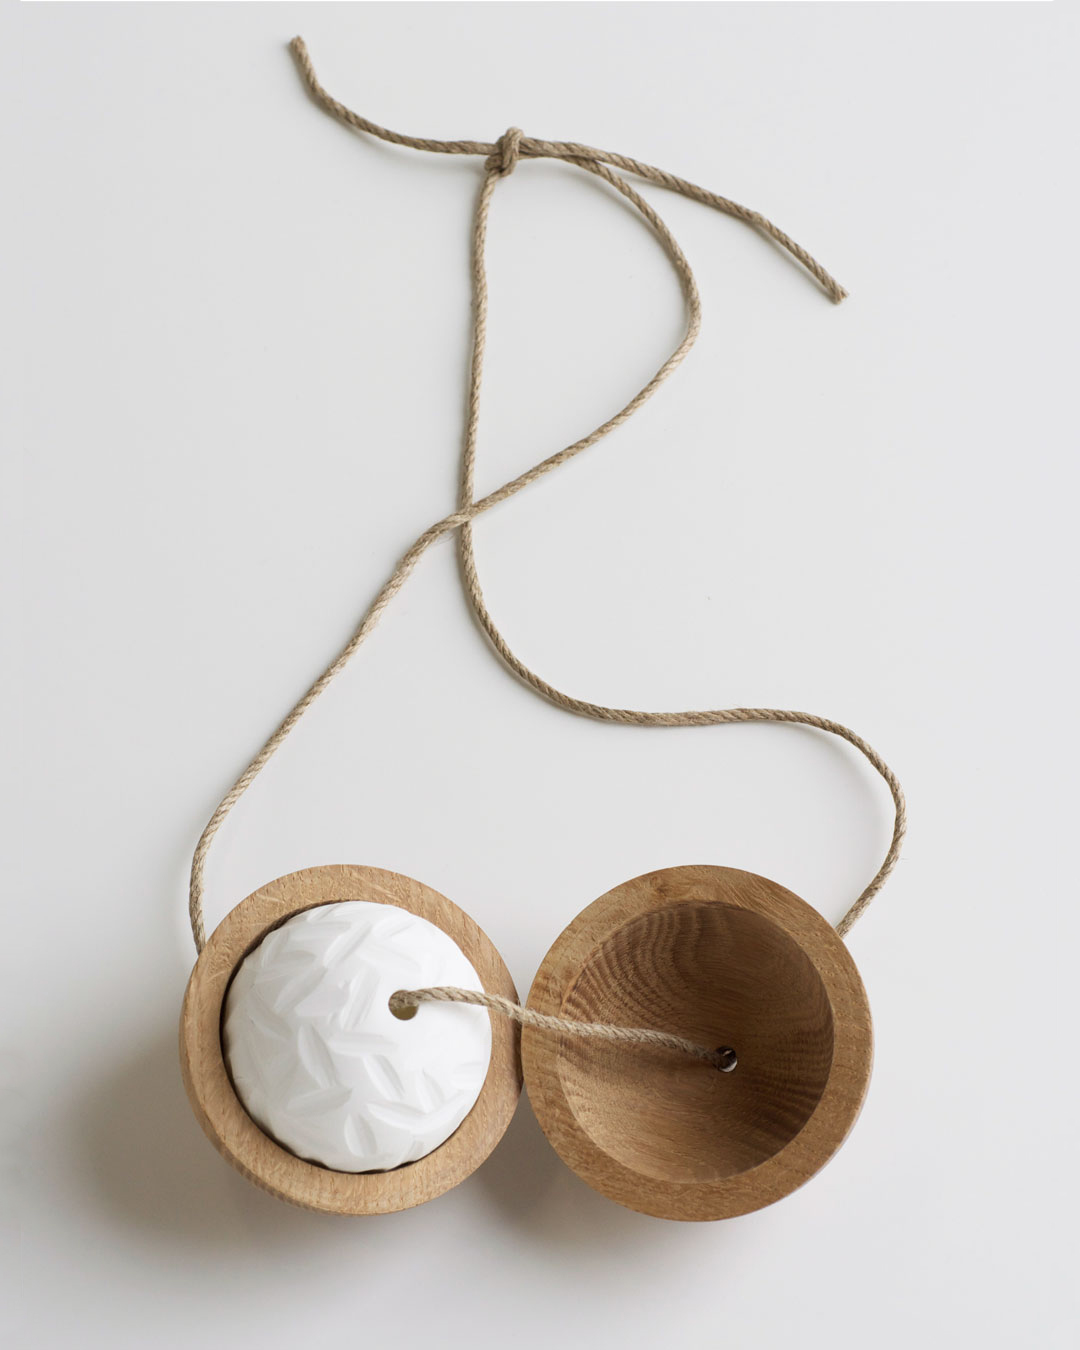 Chequita Nahar, Krabasi, 2010, necklace; oak, porcelain, string, 540 x 90 mm, €1240